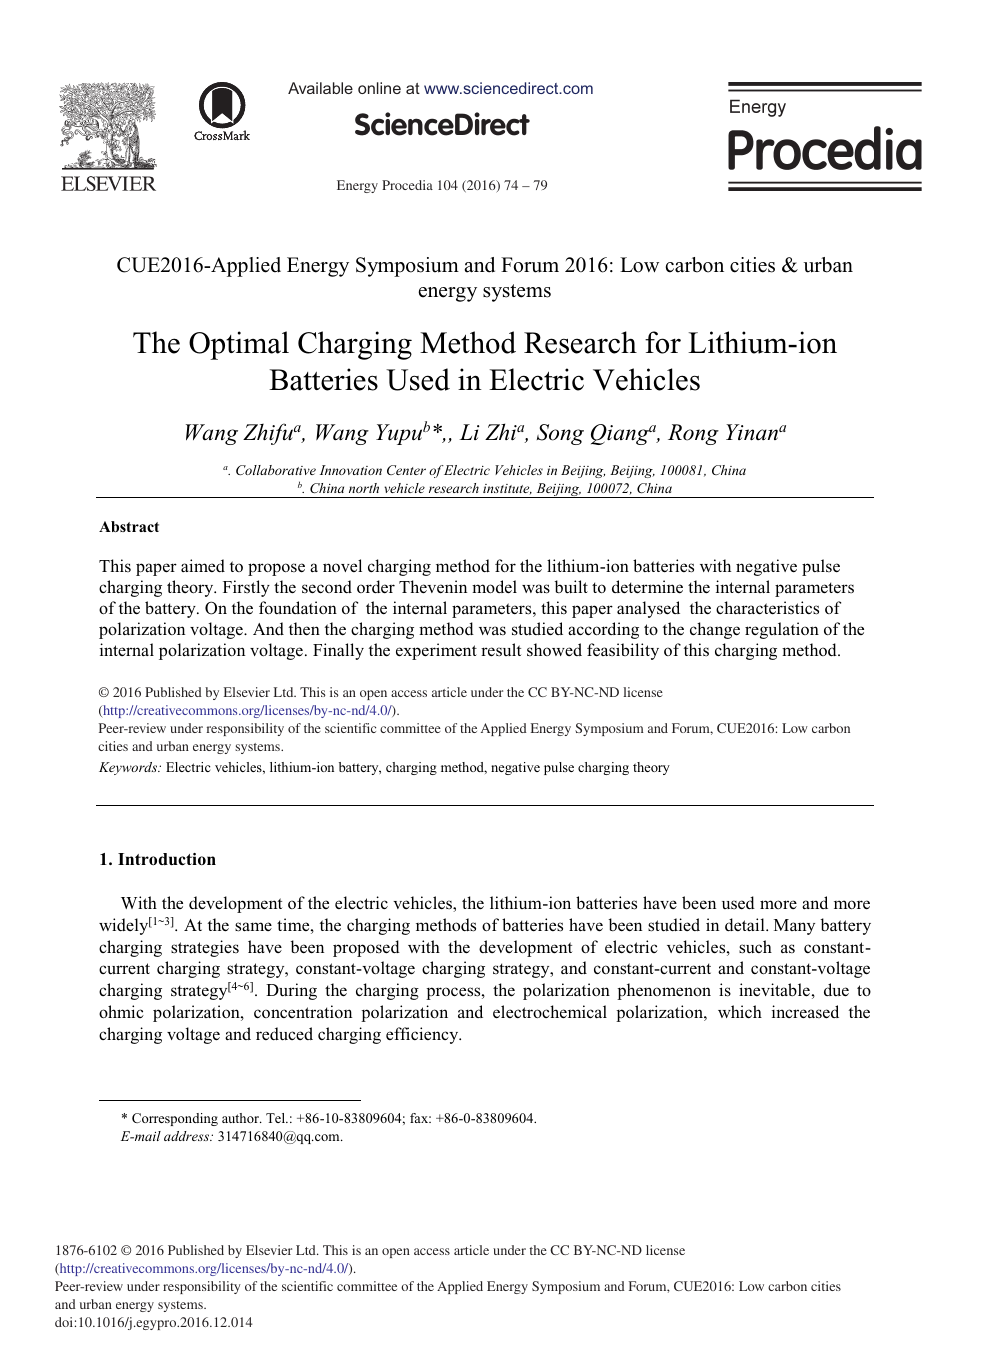 The Optimal Charging Method Research for Lithium-ion